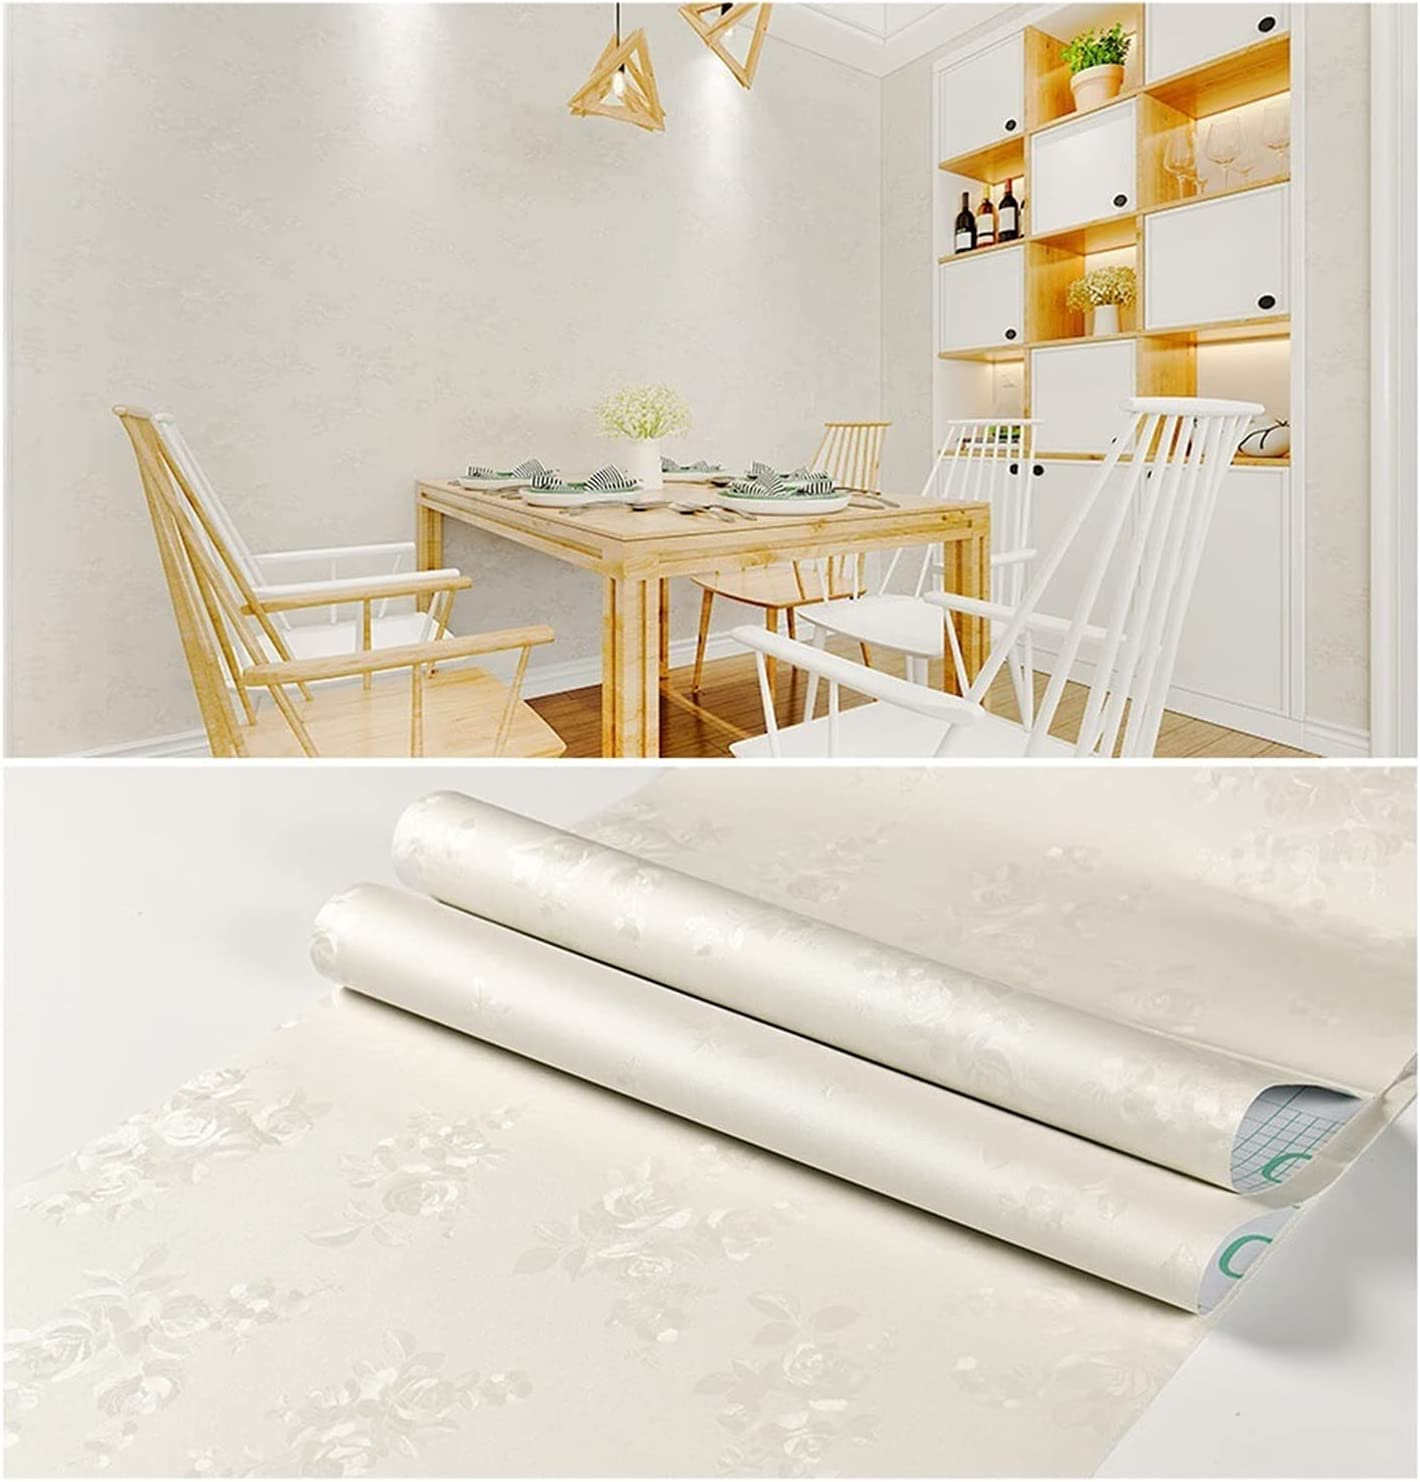 KUYUC Max 86% OFF Sale price Peel and Stick Wallpaper PVC Adhesive Paper Self Contact